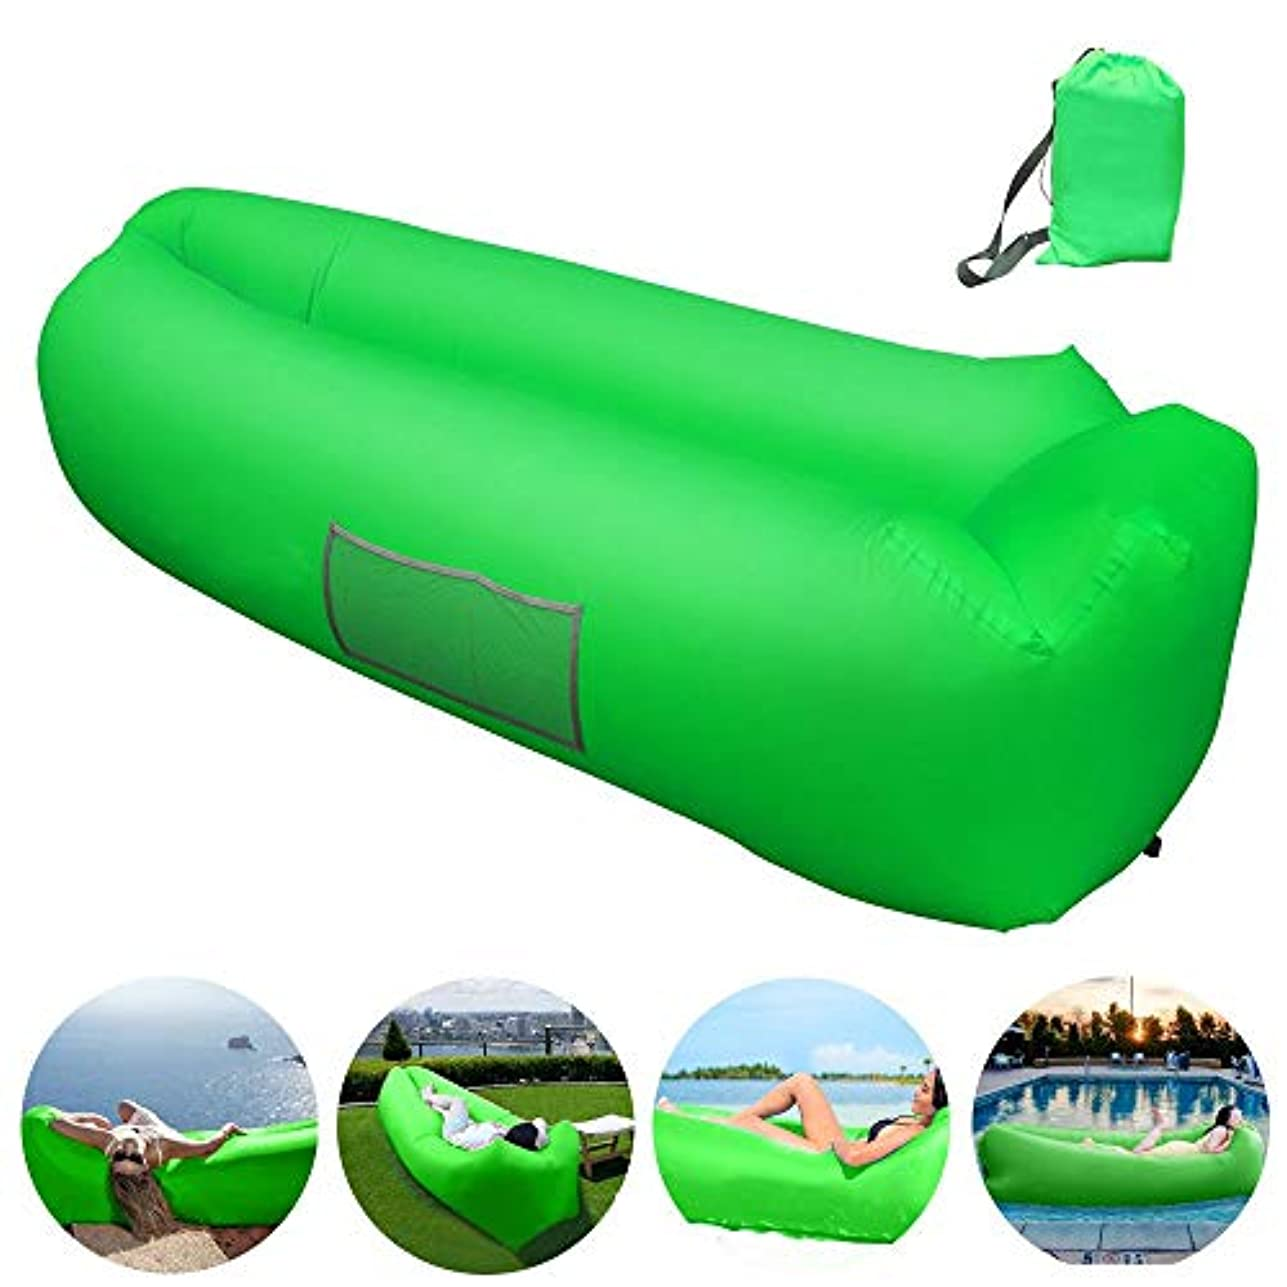 抹消劣る政策Inflatable Lounger, Inflatable Couch Hammock with Storage Pocket Waterproof& Anti-Air Leaking Air Lounger Portable Air Sofa Inflatable Chair for Indoor or Outdoor Use, Camping, Beach (LoungerG-Old) [並行輸入品]